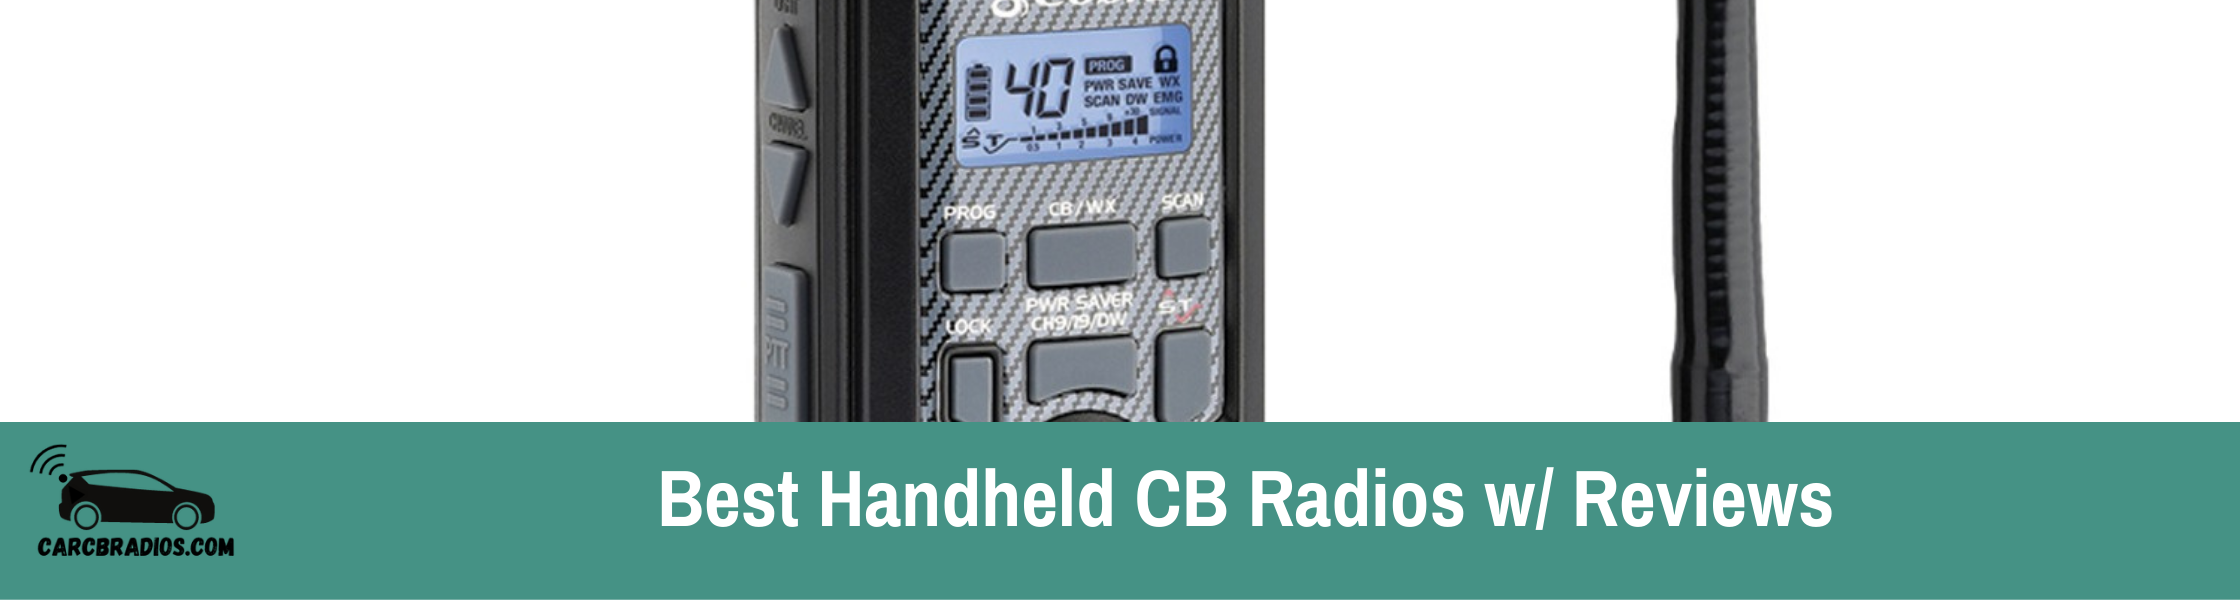 Best Handheld CB Radios: I detail the best handheld CB radios, sharing what's important, what I like and dislike as well to help you make an informed decision.